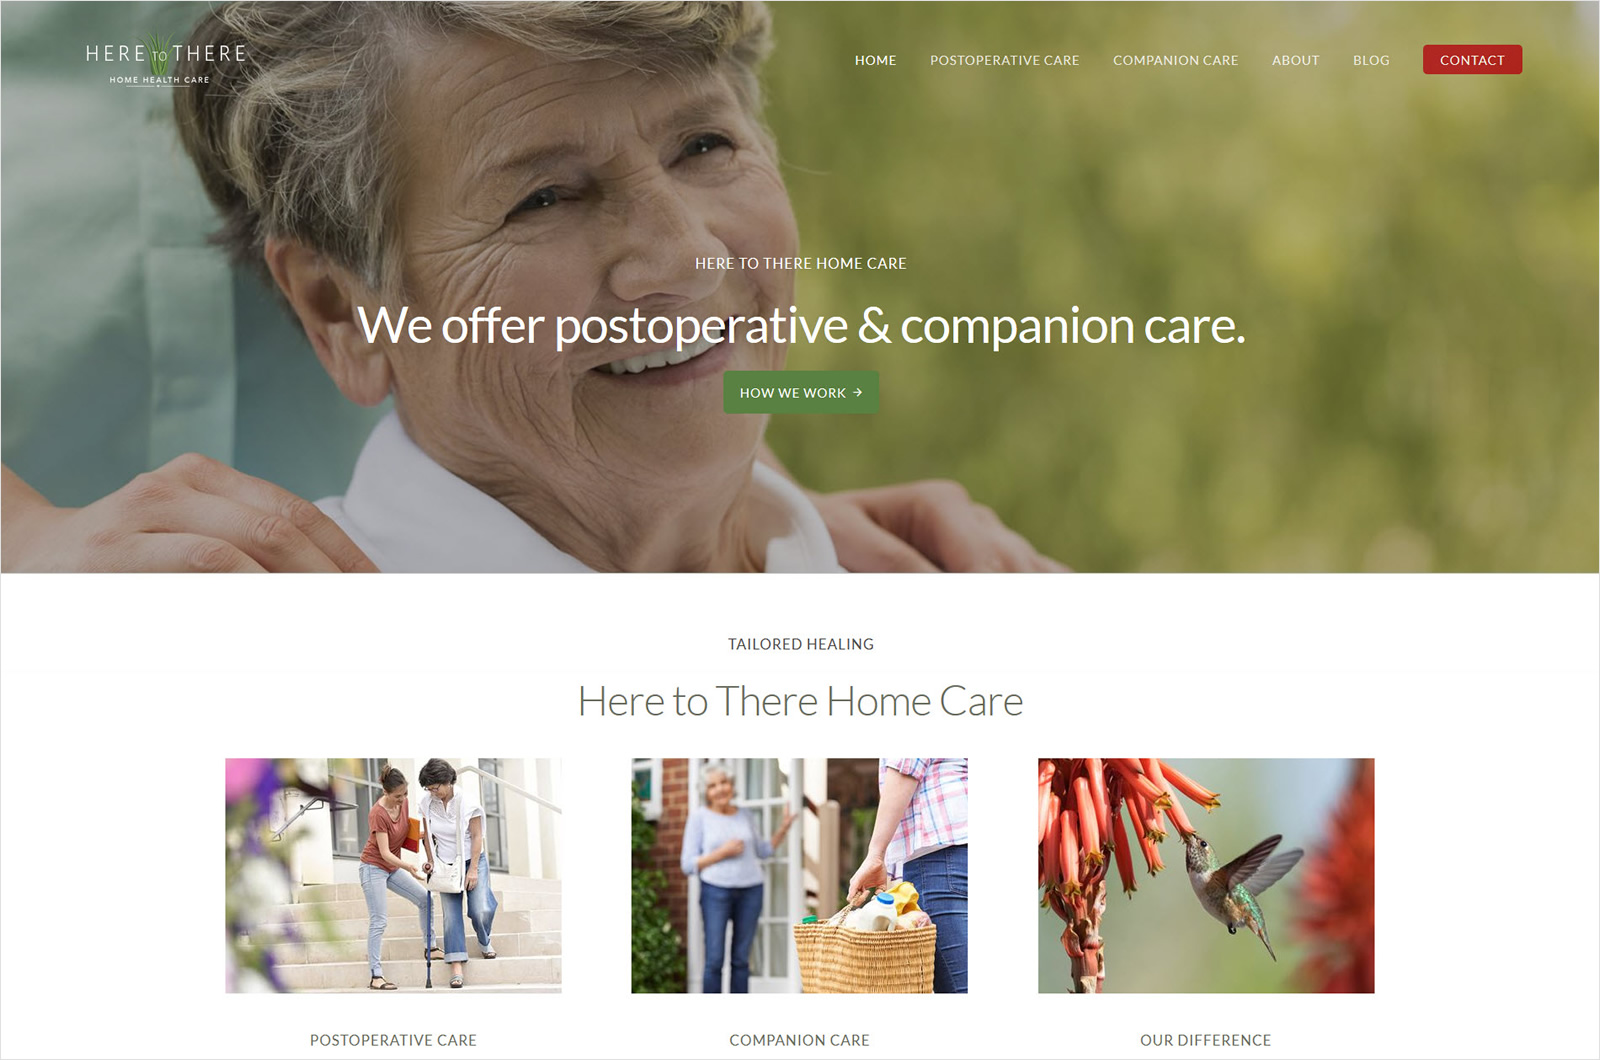 Here to There Home Care